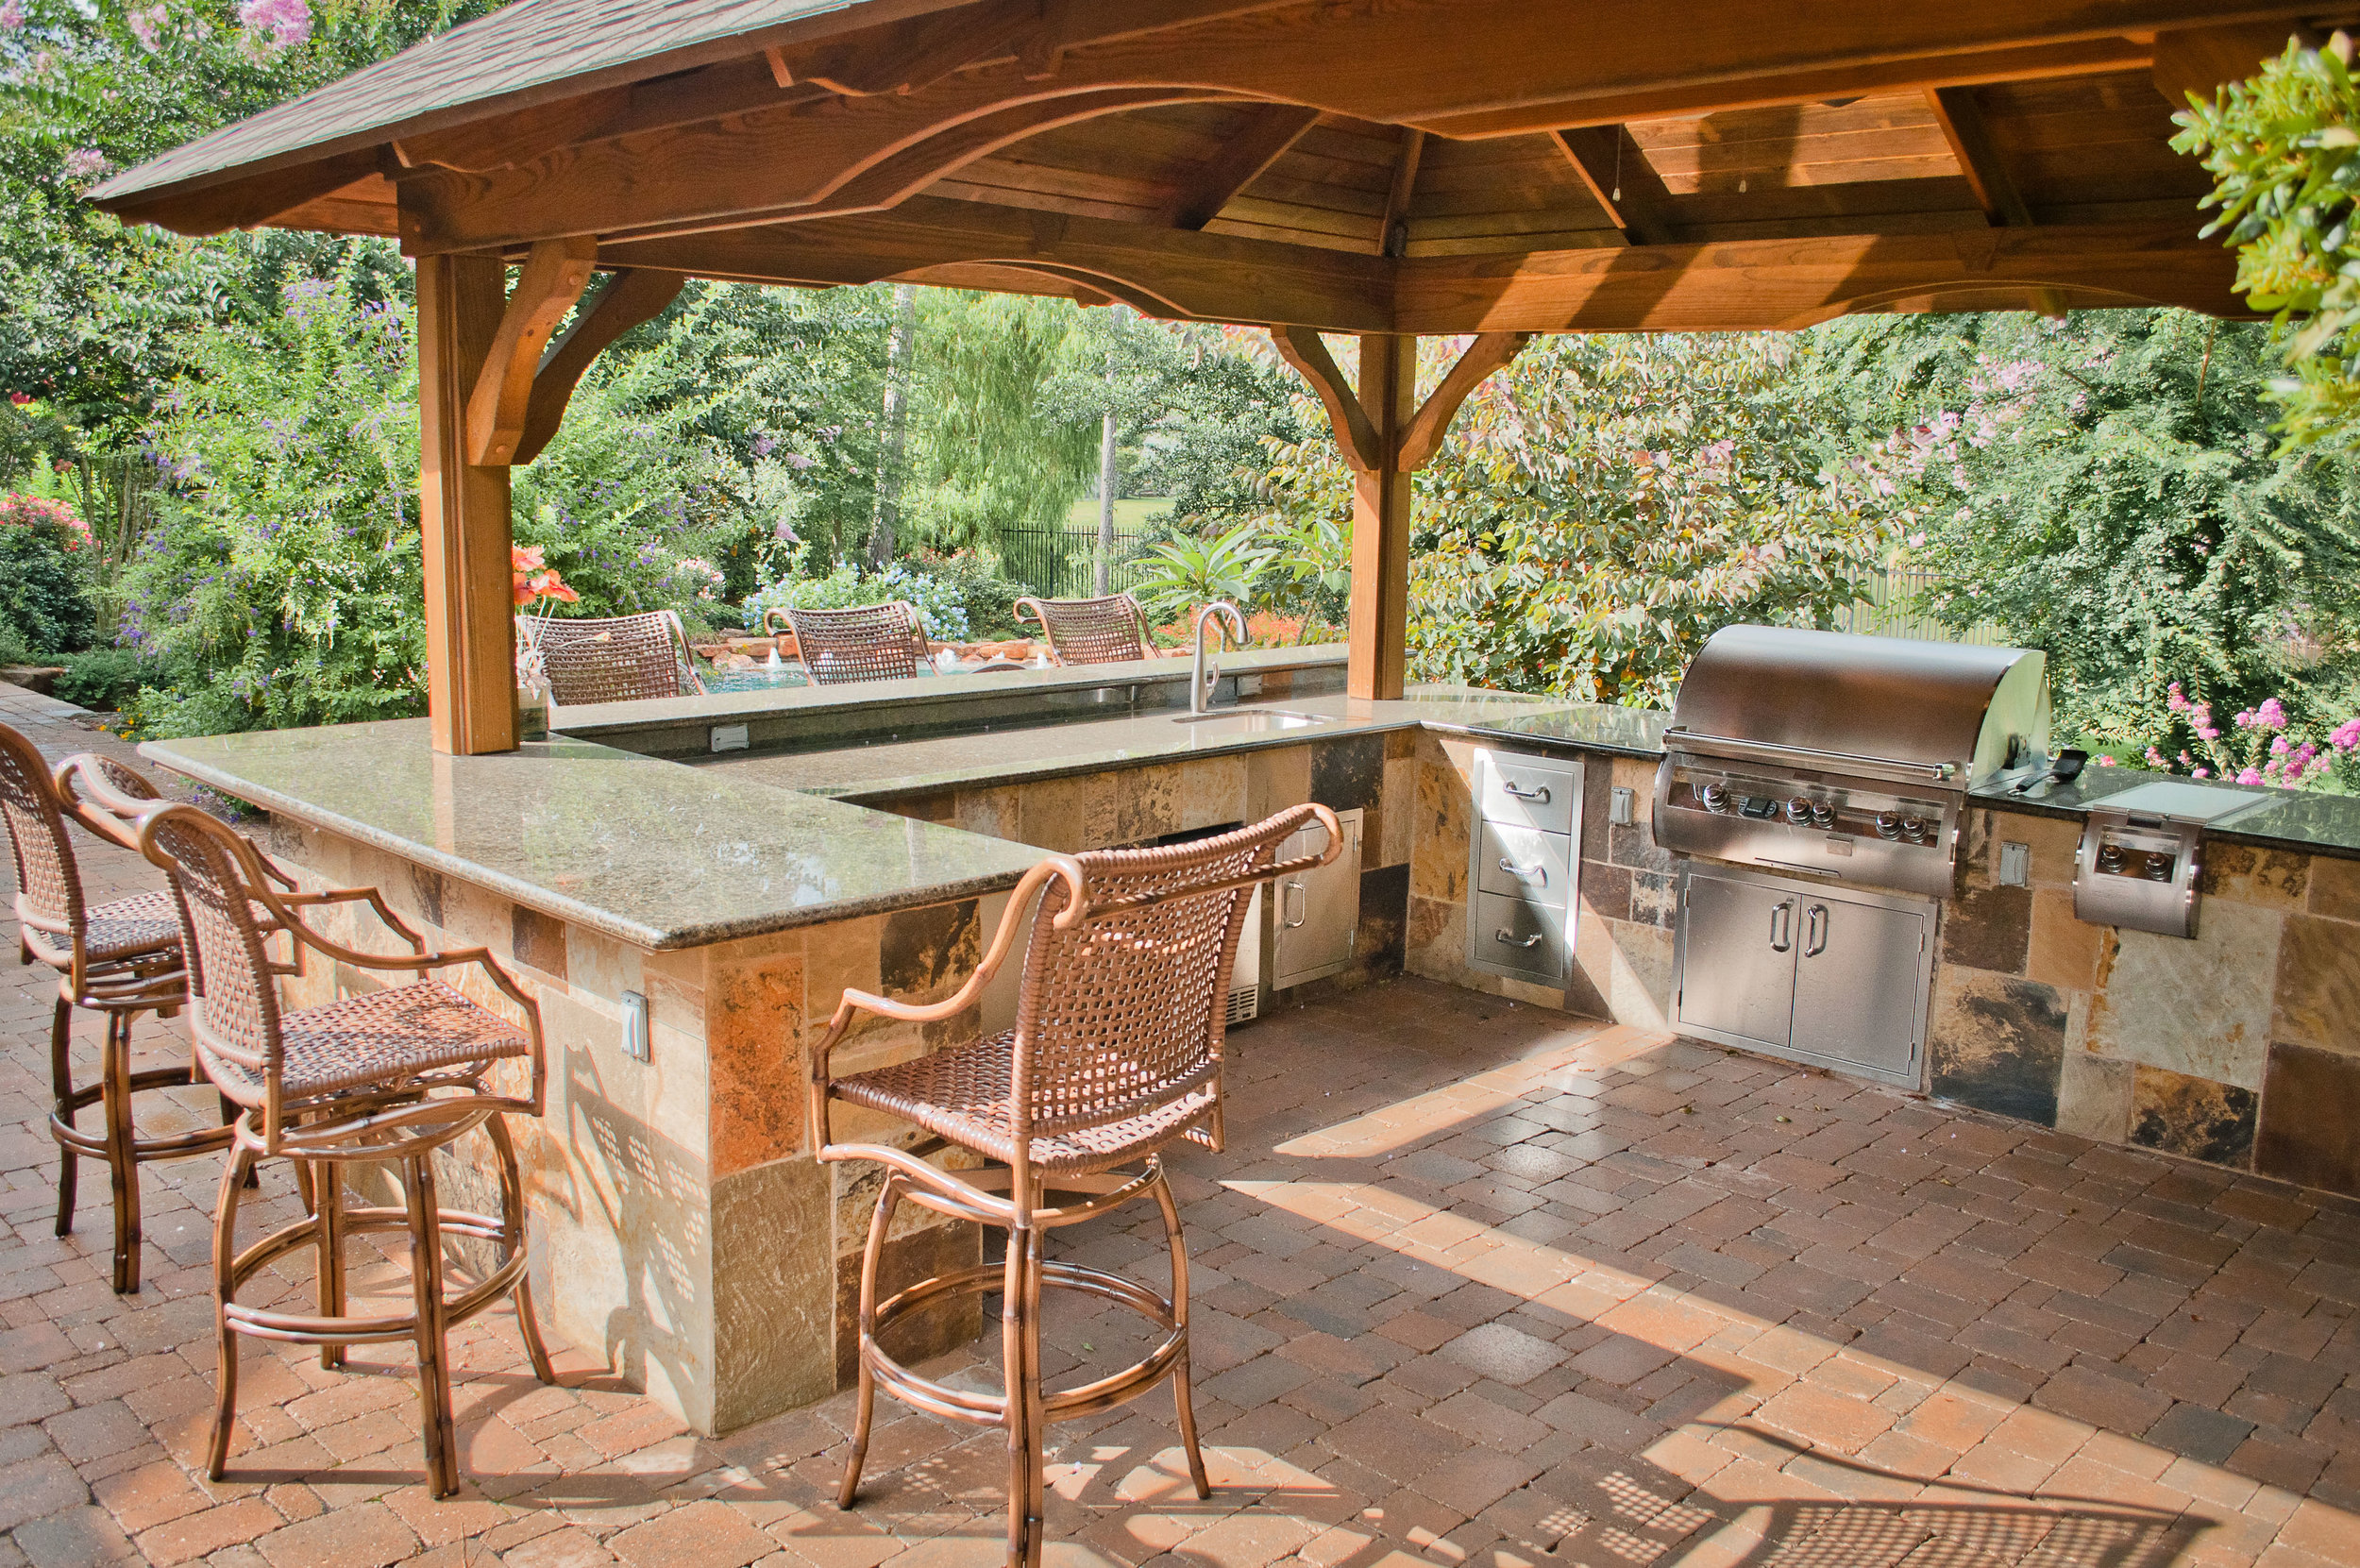 Mirror Lake Outdoor Kitchens 11.jpg